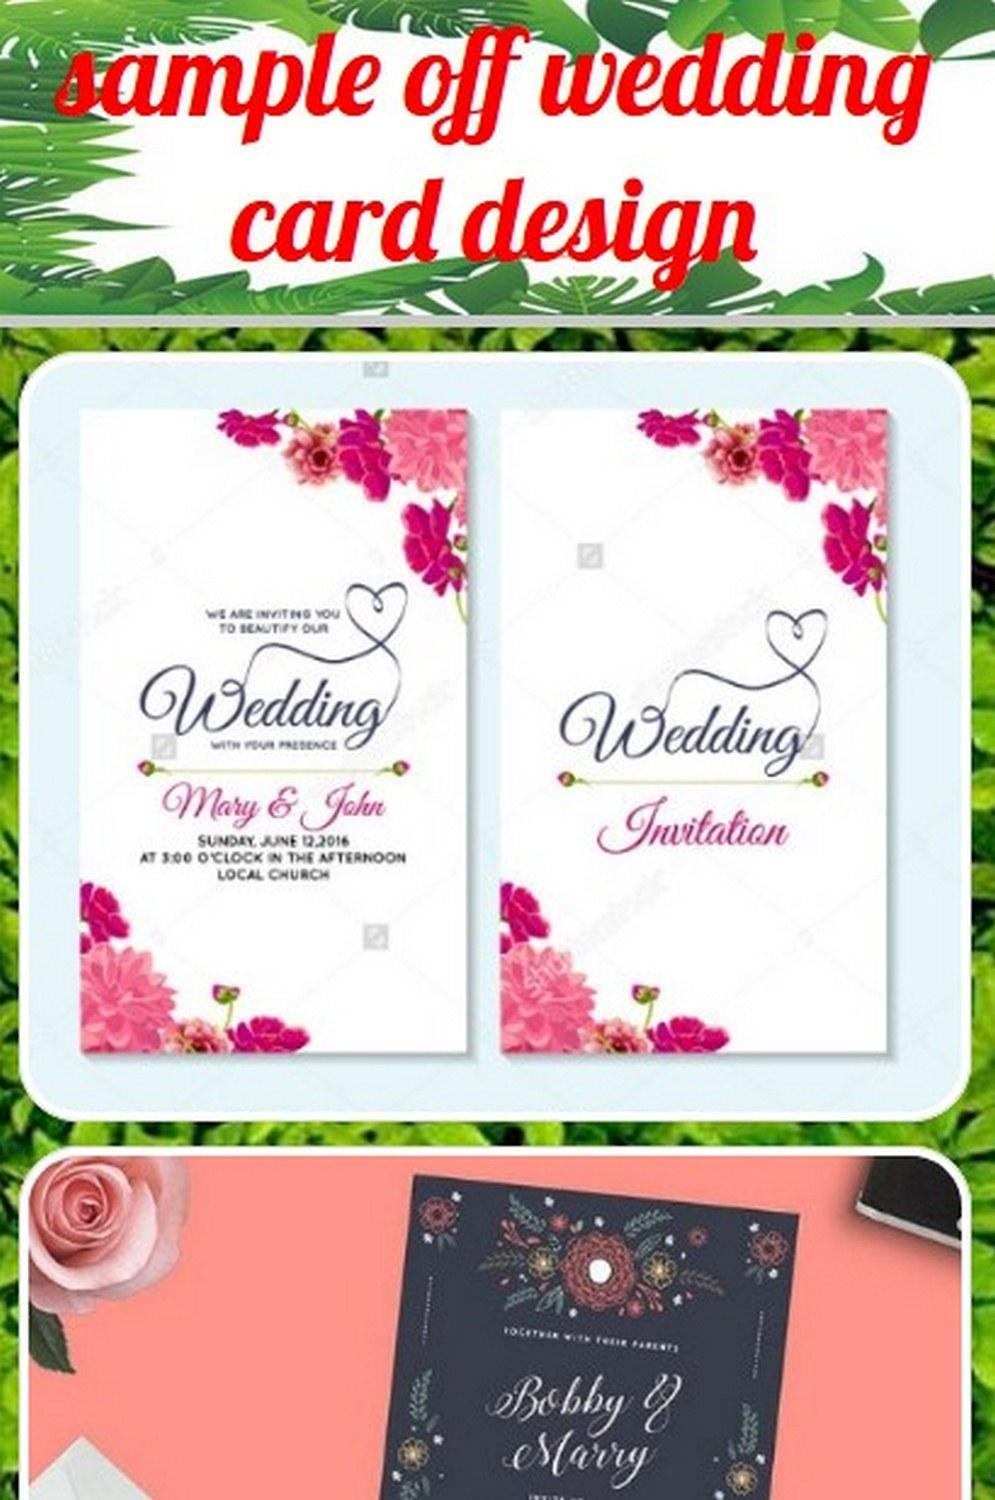 Sample Of Wedding Card Design For Android APK Download